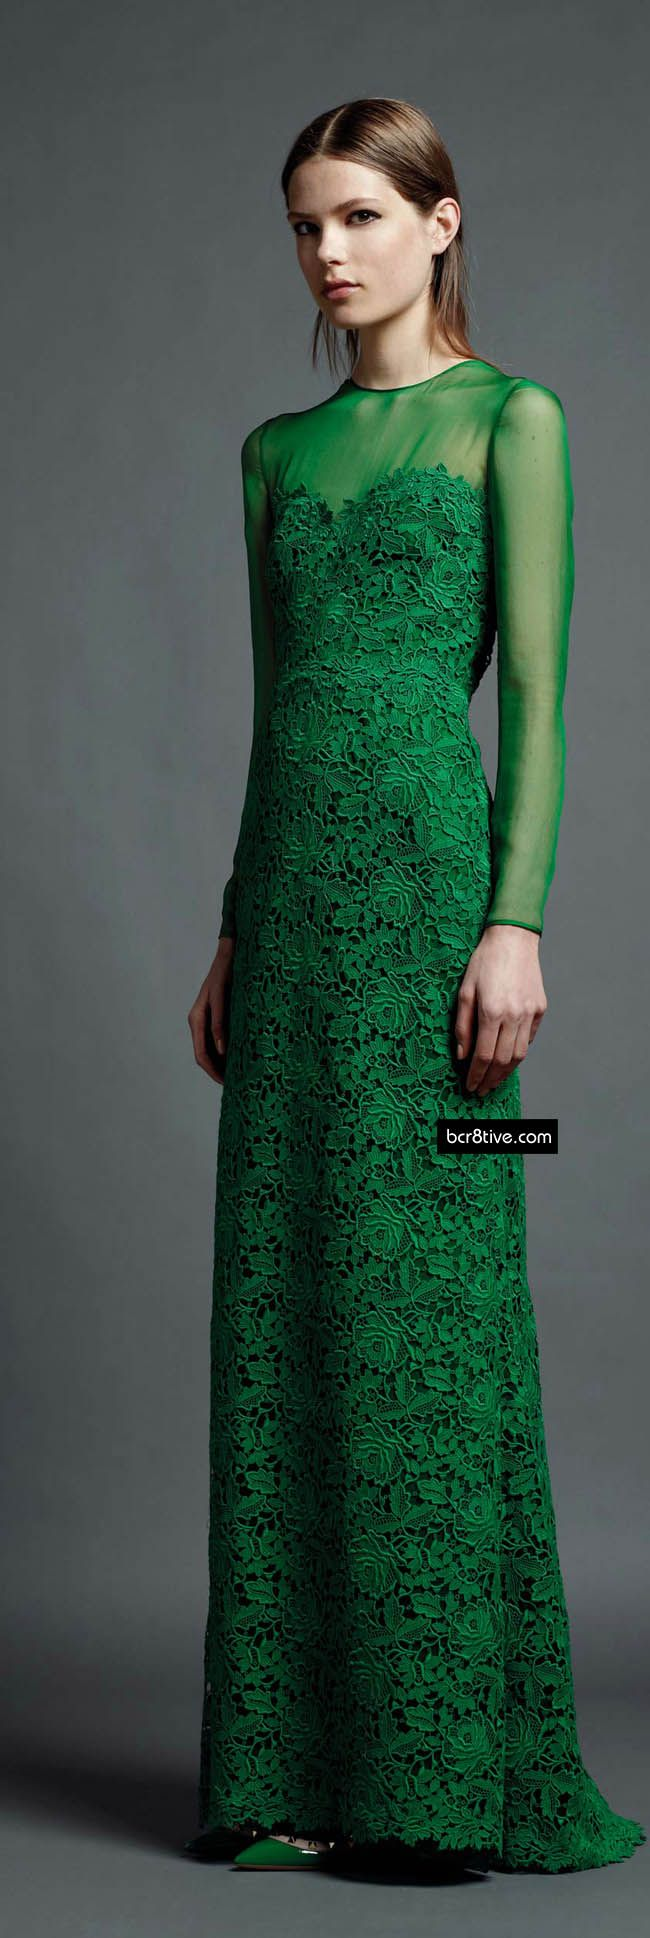 17 Best ideas about Green Lace Dresses on Pinterest | Green dress ...